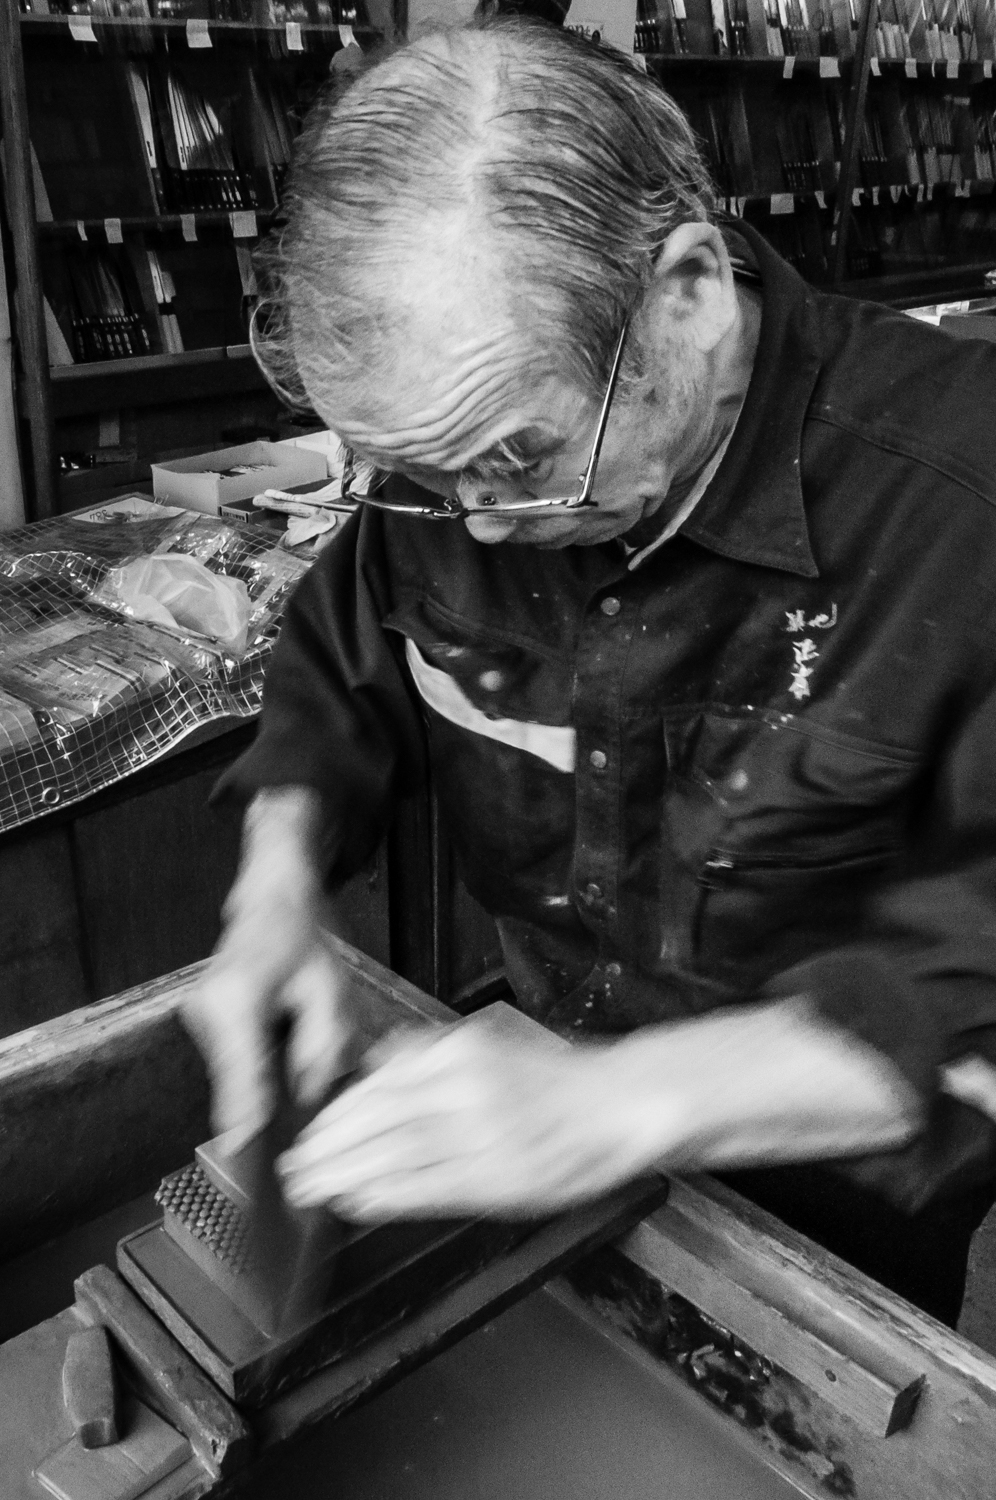 An artisans sharpens the cutlery the old way, before it gets sold to the customers.